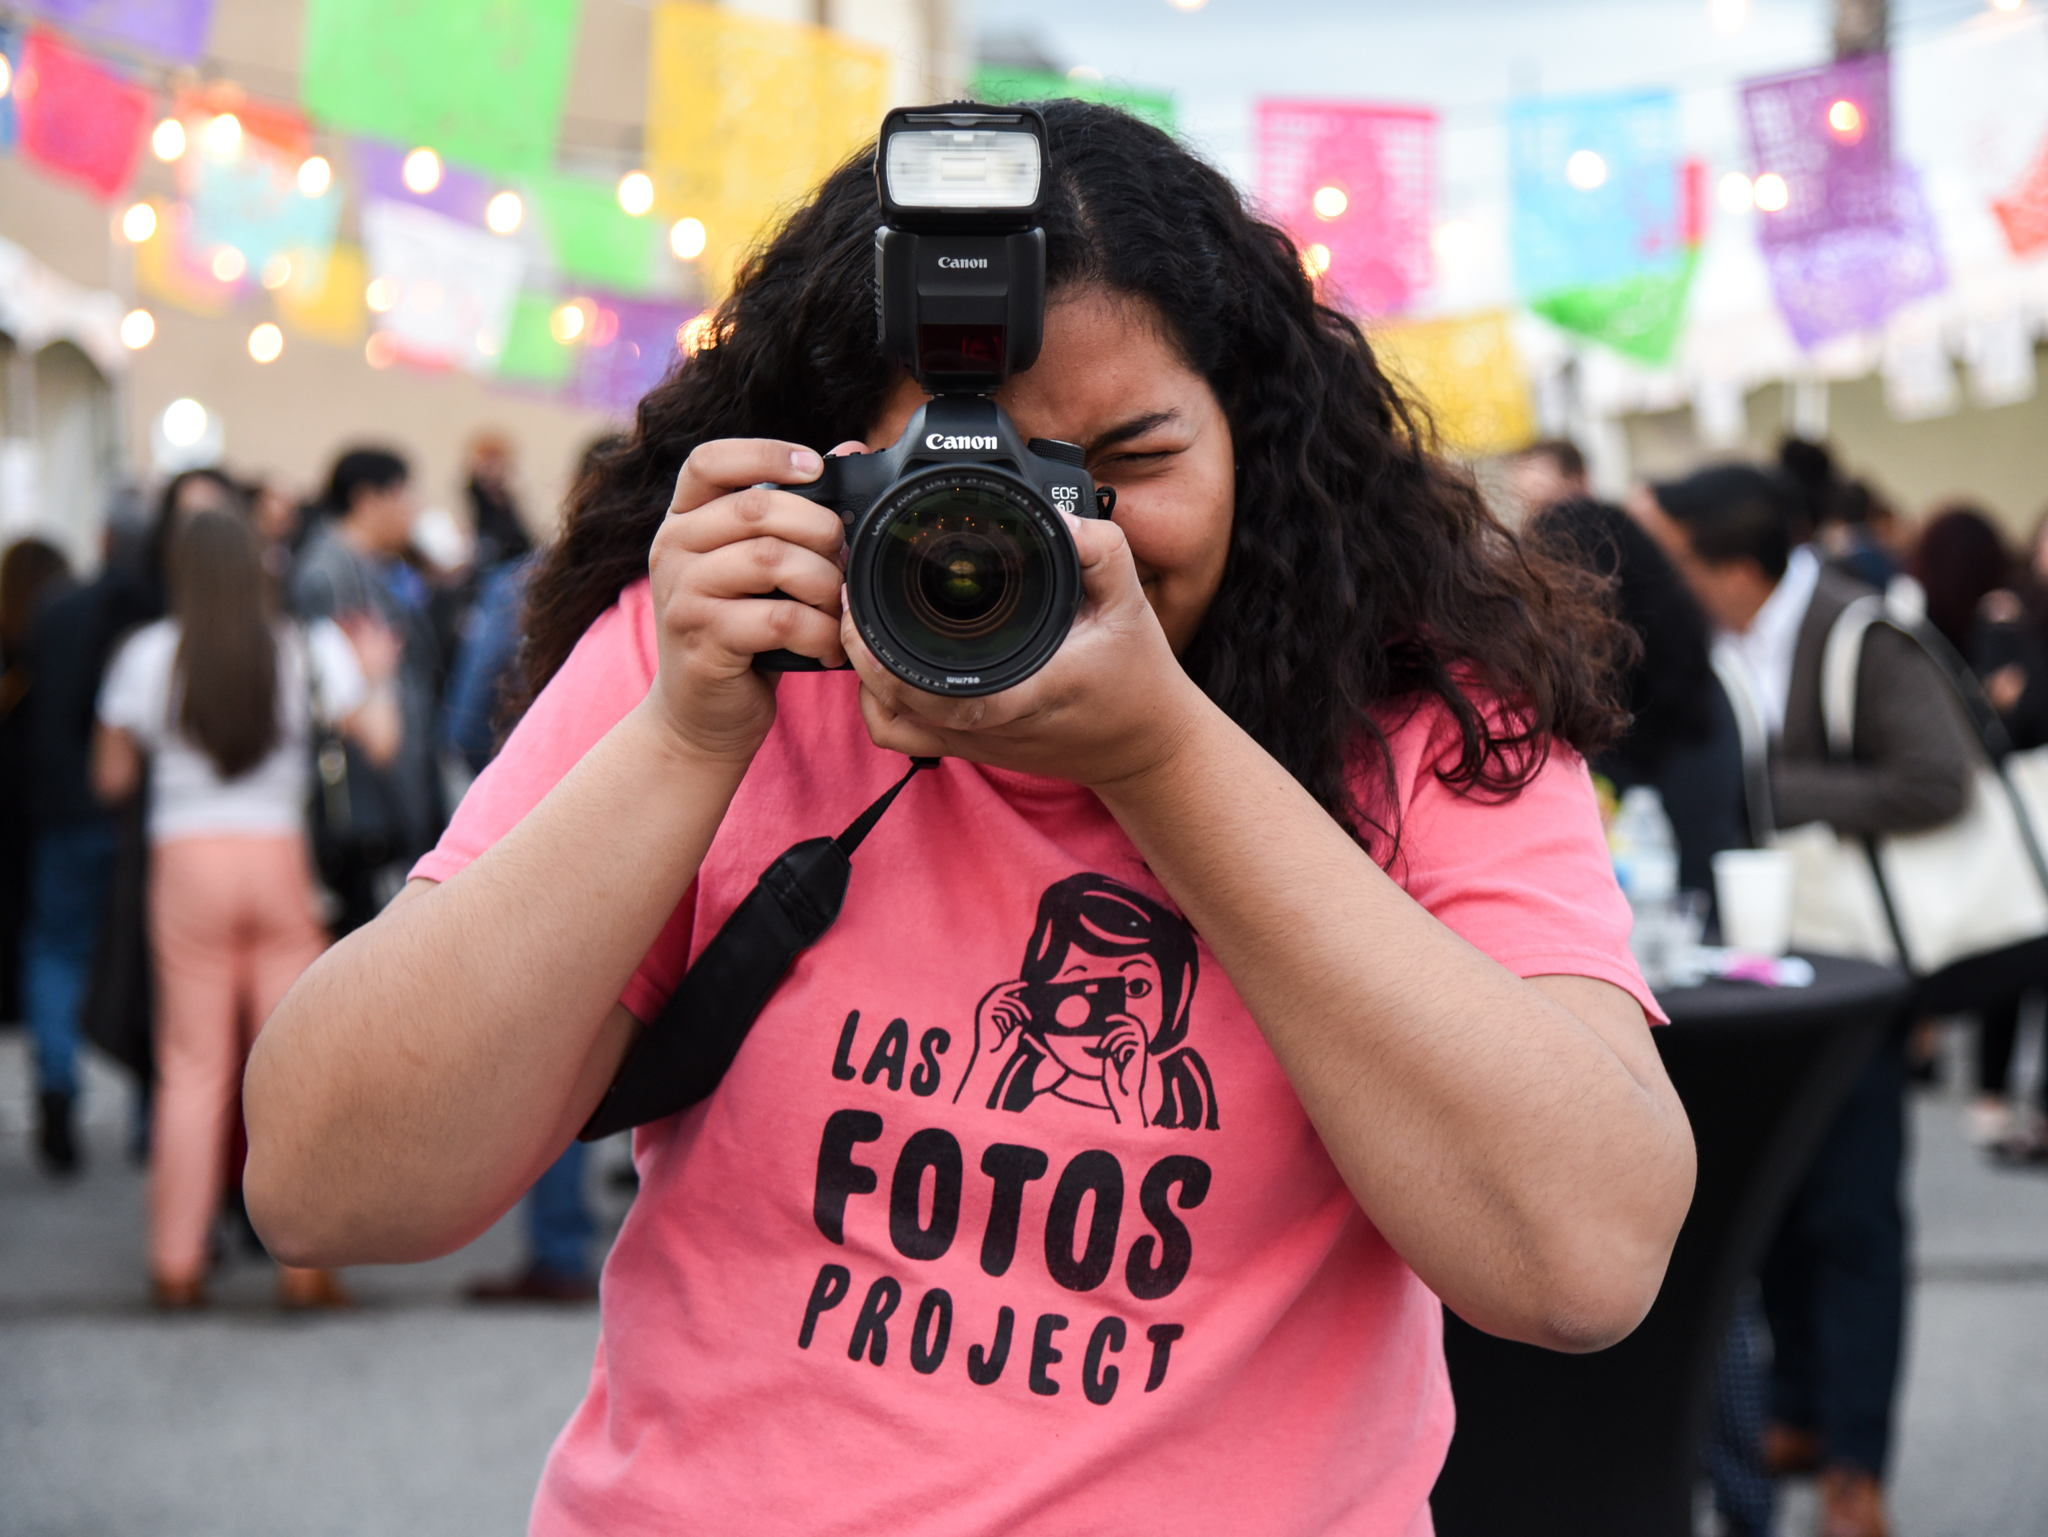 """A girl wearing a pink """"Las Fotos Project"""" t-shirt holds a DSLR camera up to her face"""